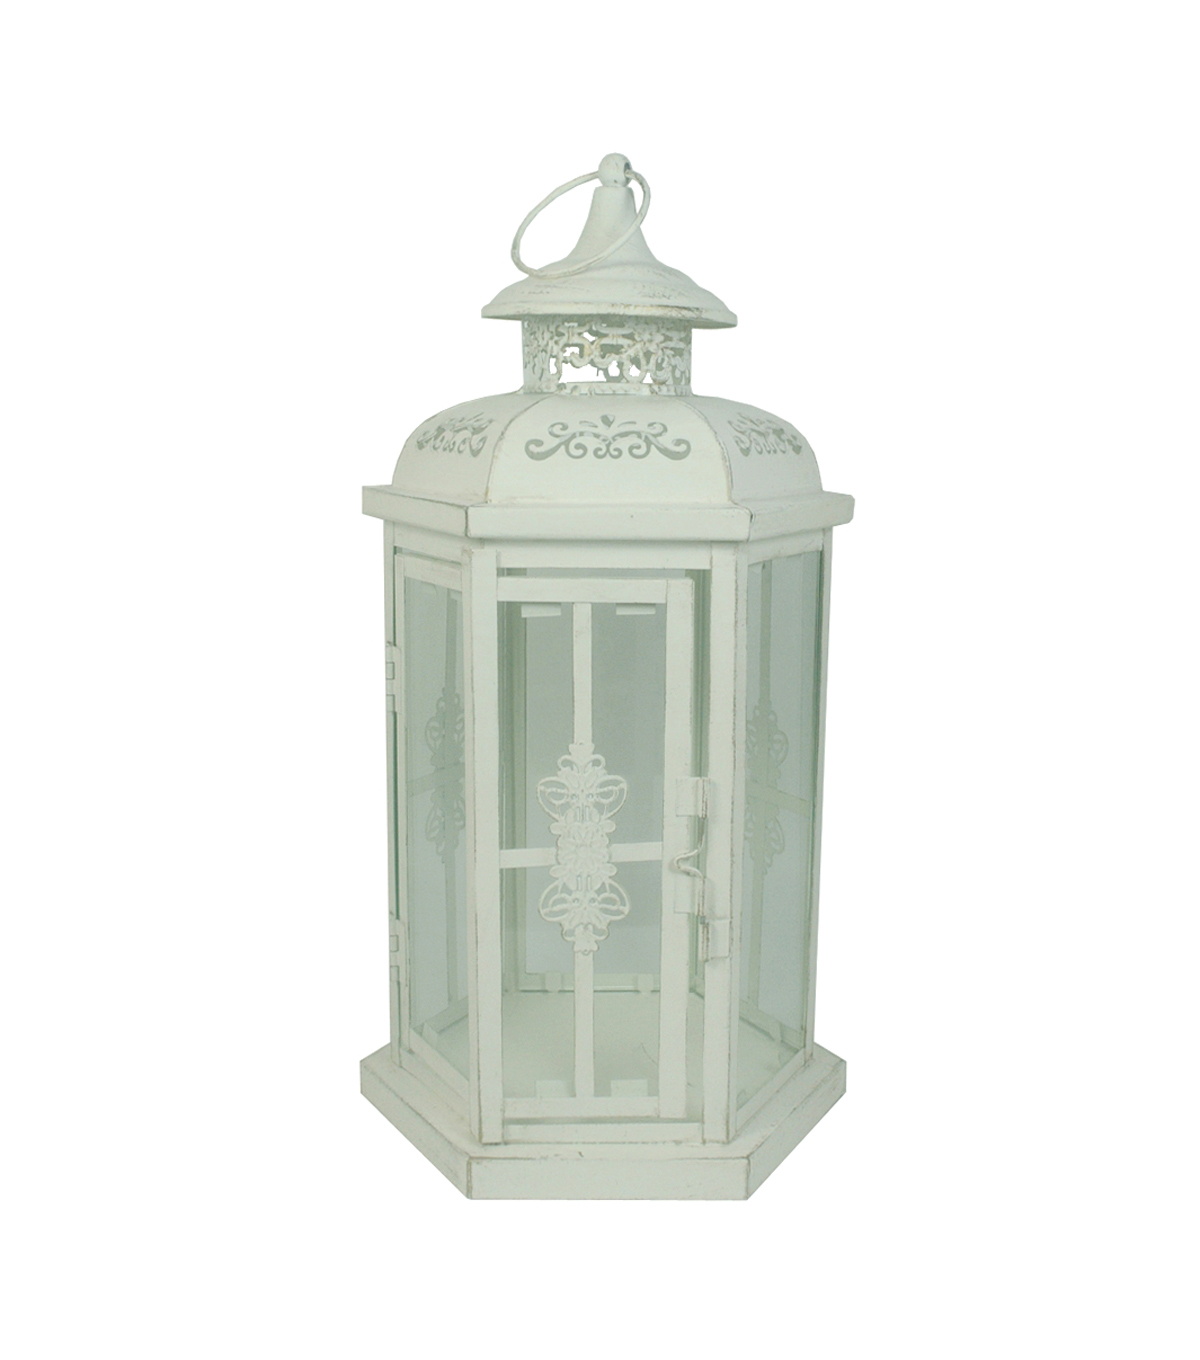 Hudson 43™ Candle & Light Collection Lantern-Distressed White